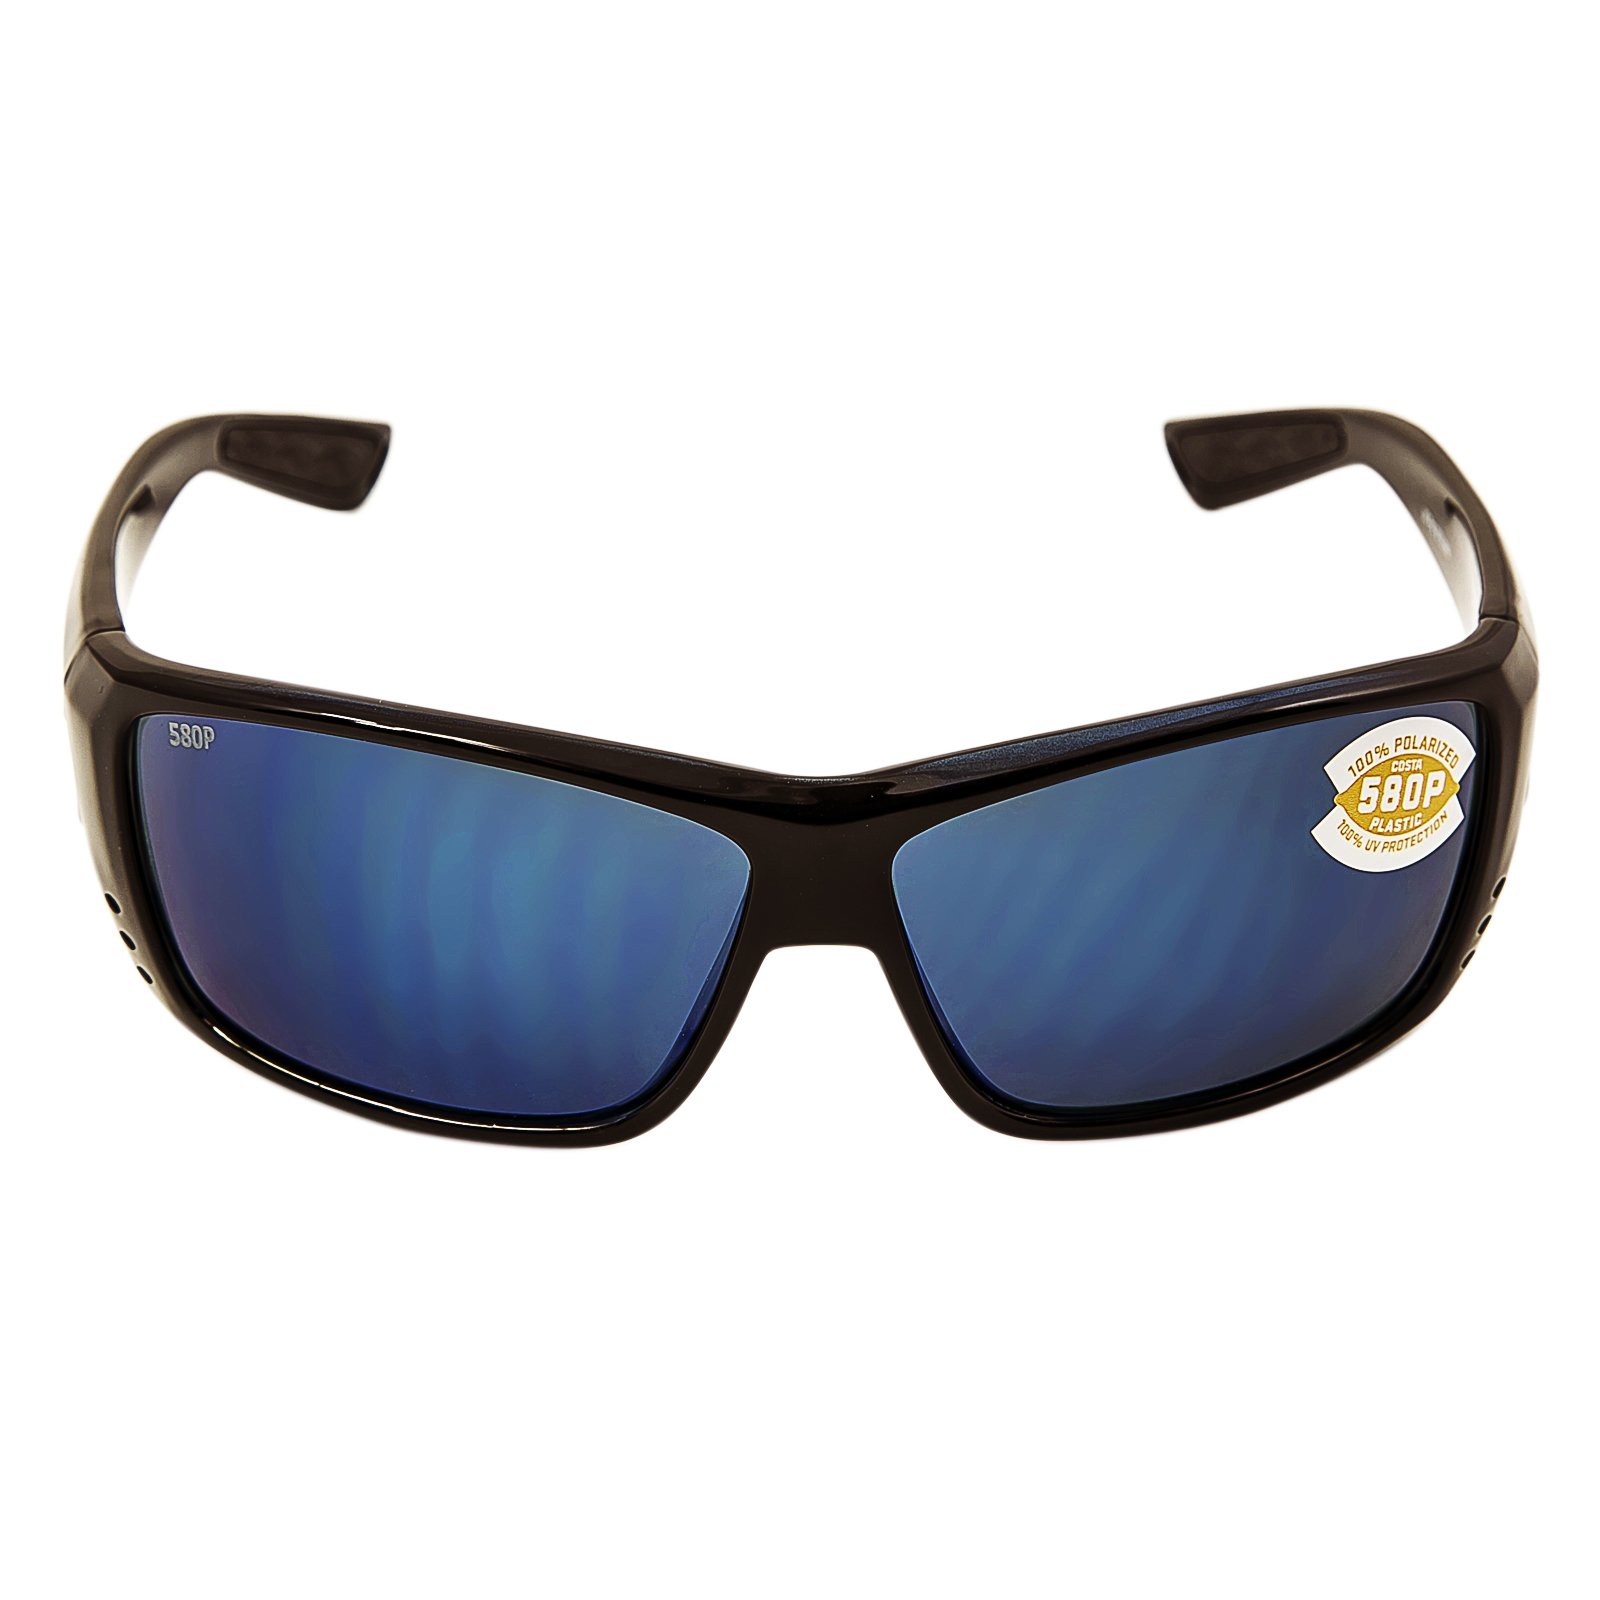 Costa Del Mar Mag Bay Sunglasses, Shiny Black, Blue Mirror 580P Lens